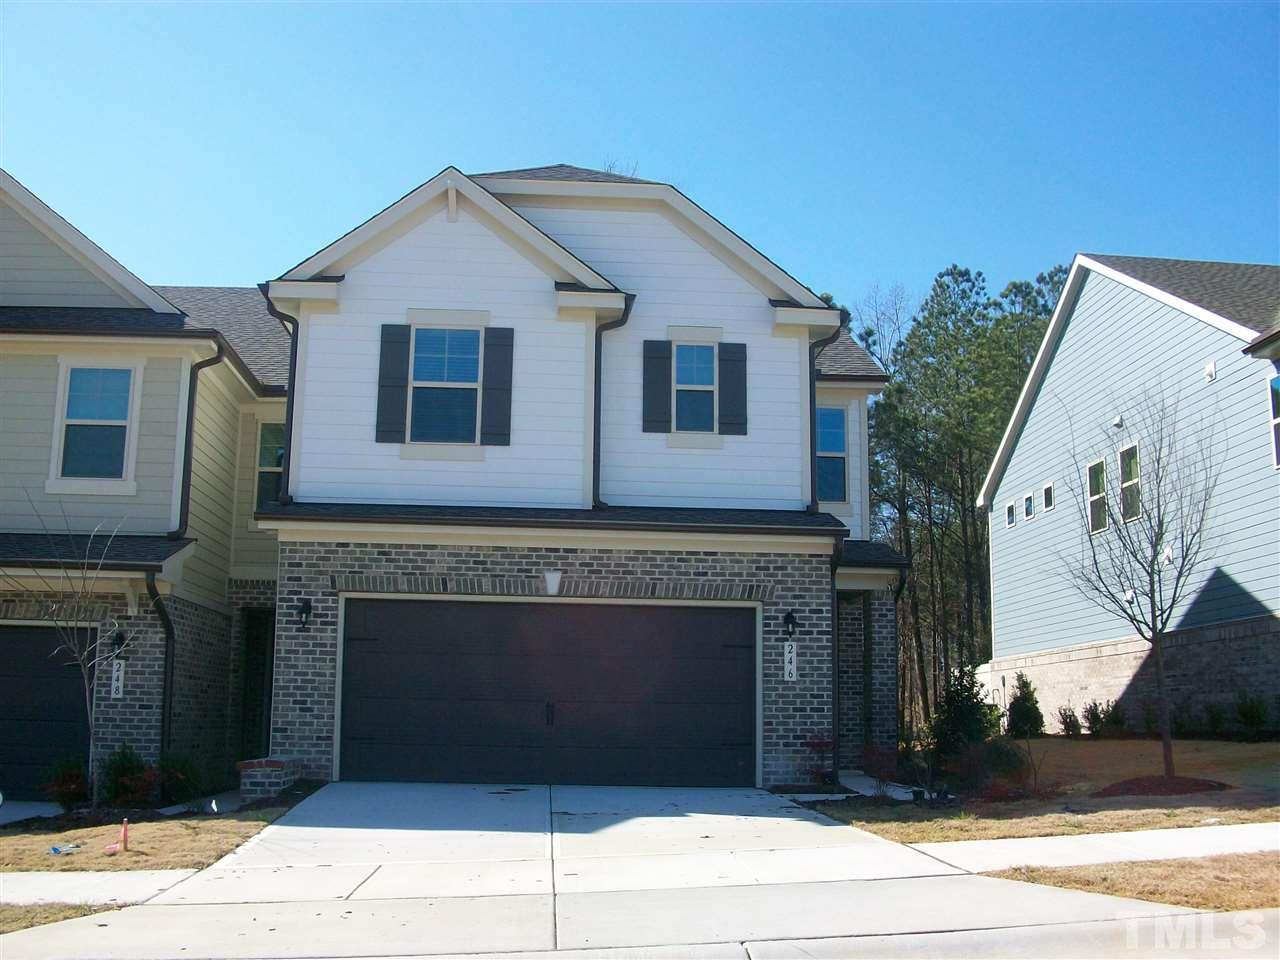 Beautiful 3 bedrooms, 2-1/2 baths and a 2-car garage Townhome in the Green Hope Crossing Community in Cary NC. Open family room faces the casual dining and gourmet-style kitchen. Upstairs, spacious secondary bedrooms, a loft and generously sized owner's suite with walk in closet provide plenty of living space for everyone. Many upgrades - Hardwood Floors, Granite Countertops and Upgraded Appliances. Spacious Living Area and End Unit Convenience and Privacy.